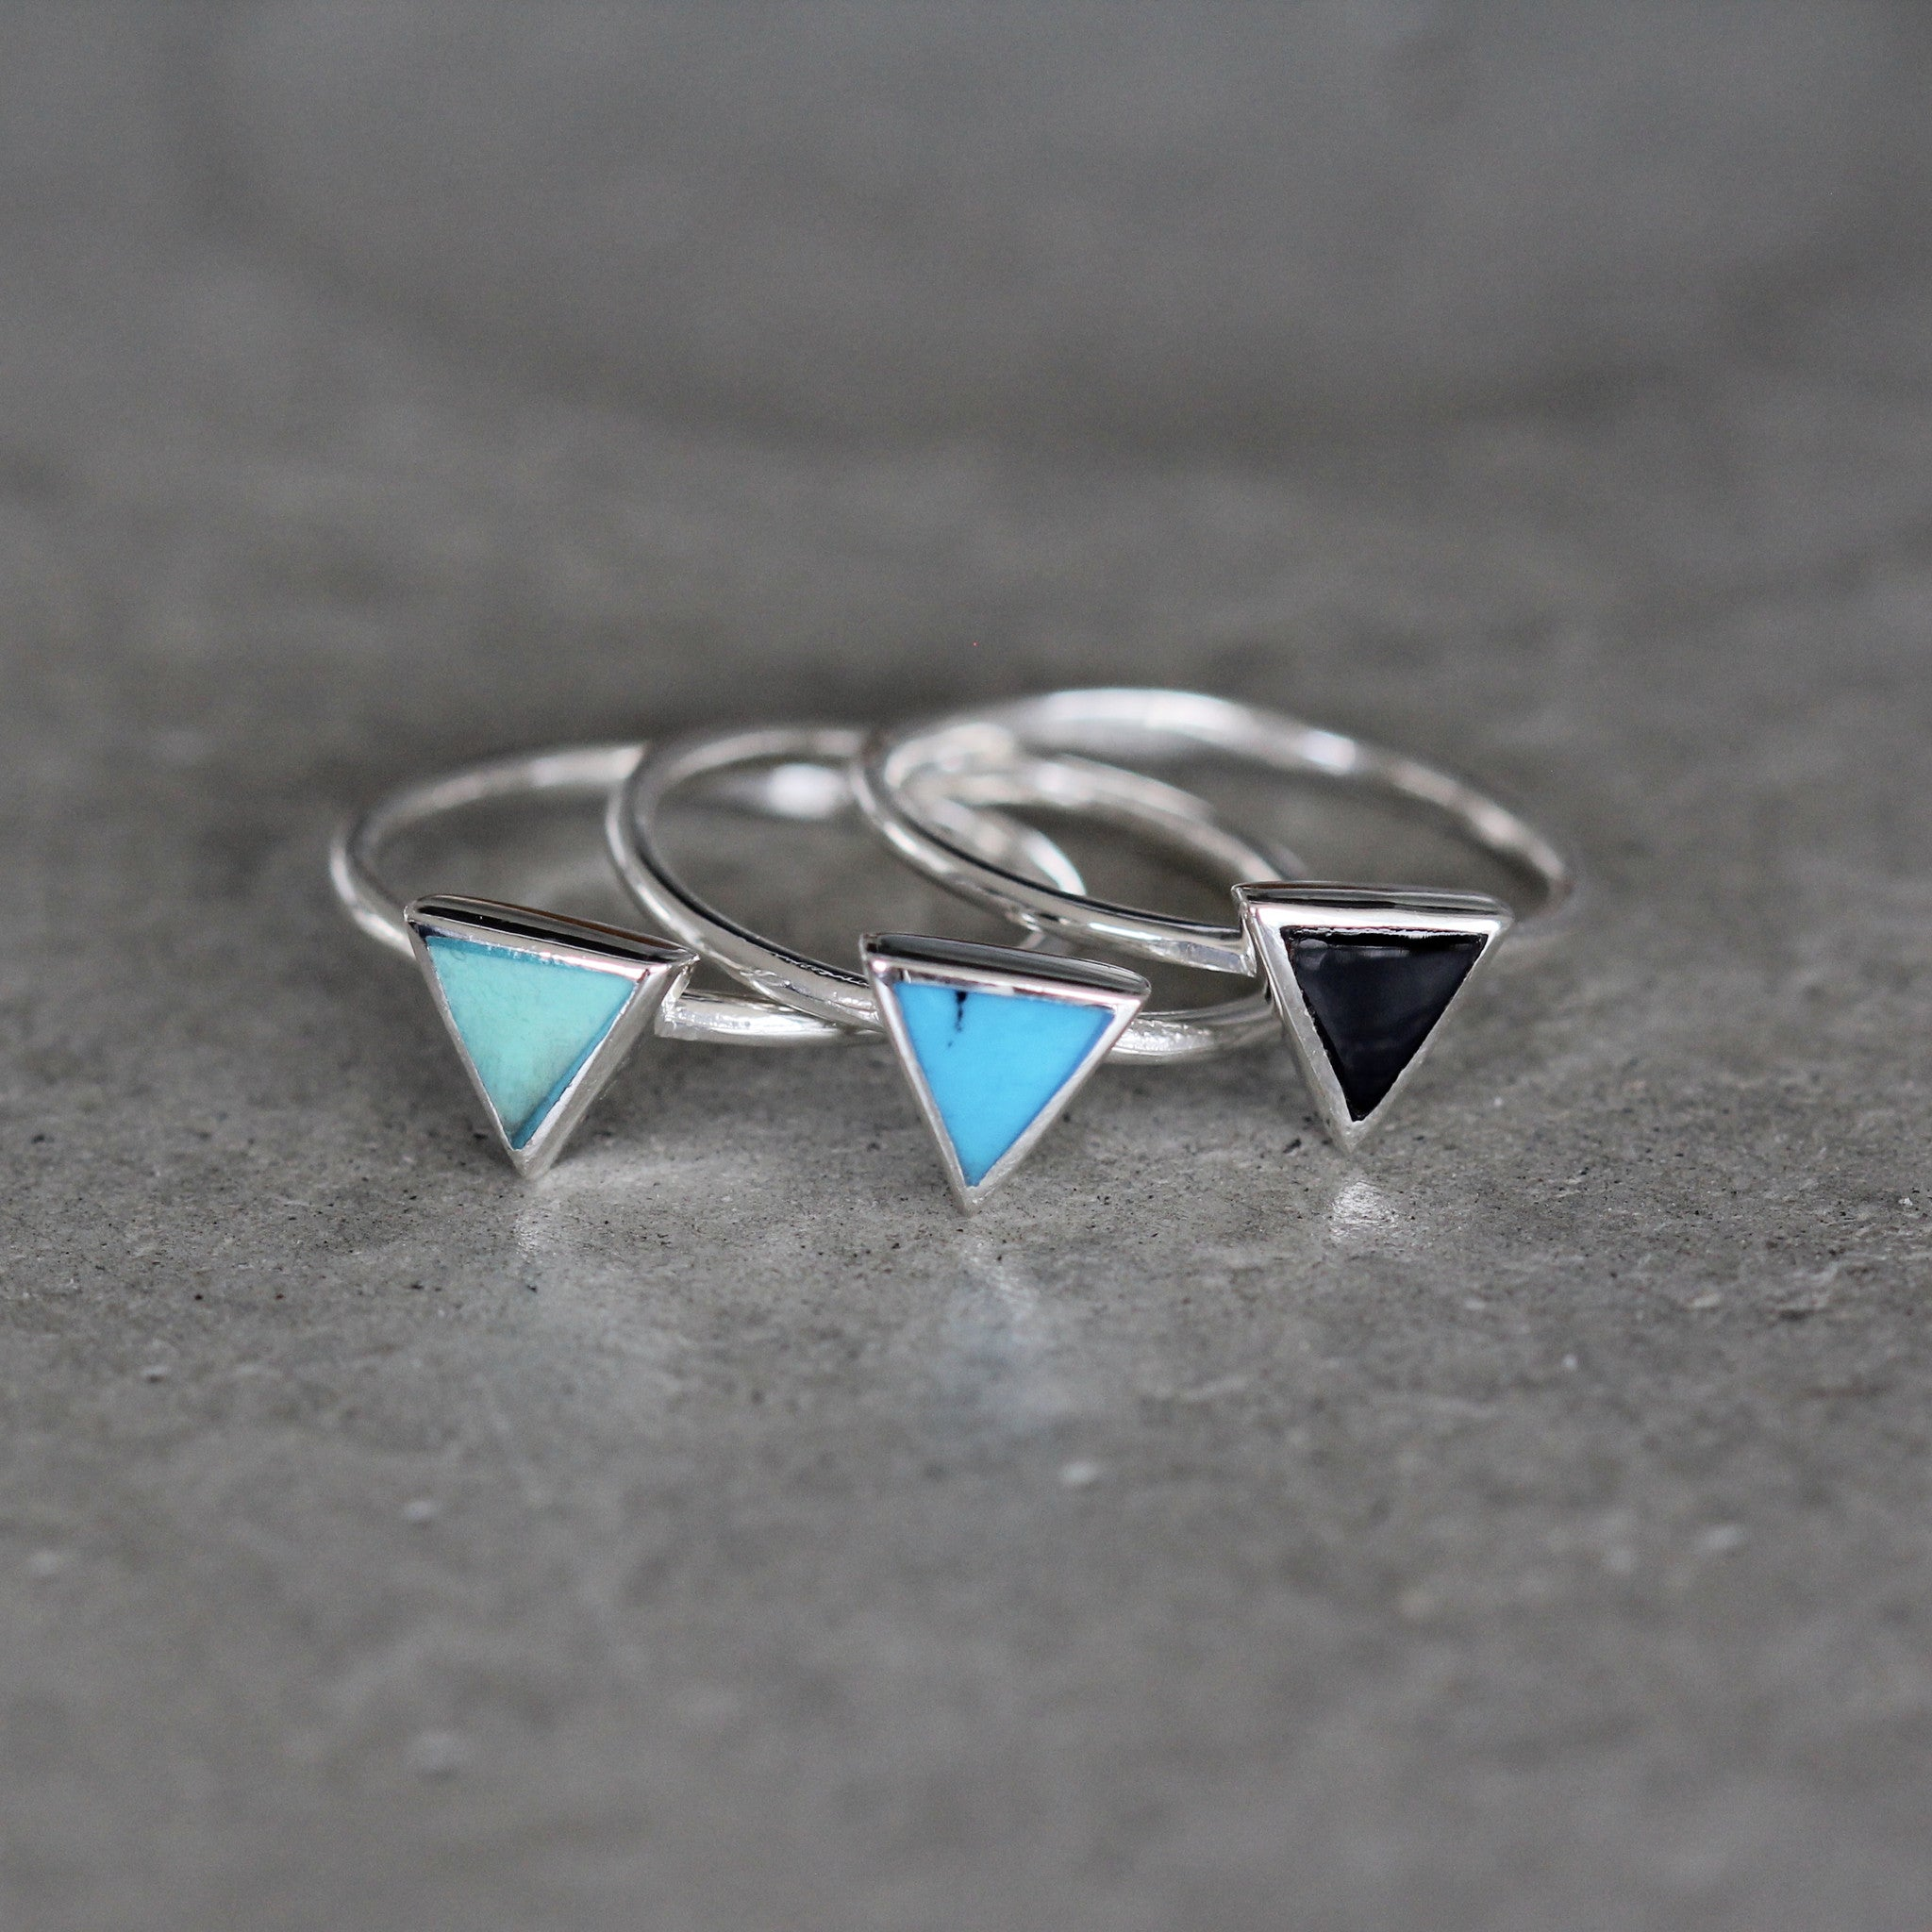 Jay Triangle Stone and Sterling Silver Ring Set of 3